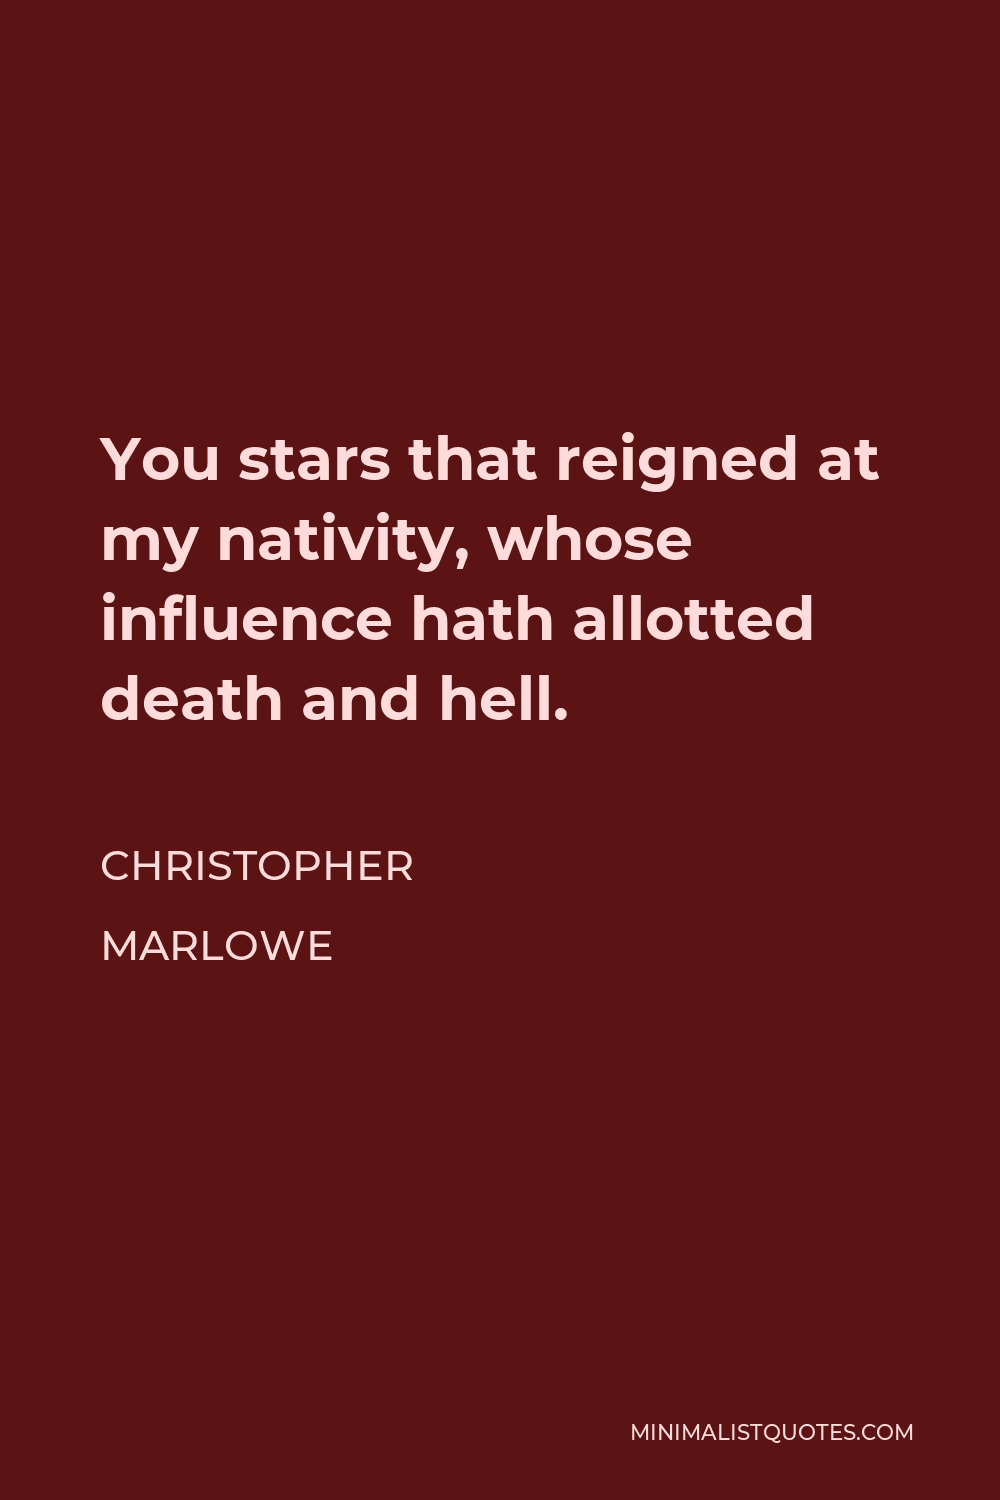 Christopher Marlowe Quote - You stars that reigned at my nativity, whose influence hath allotted death and hell.